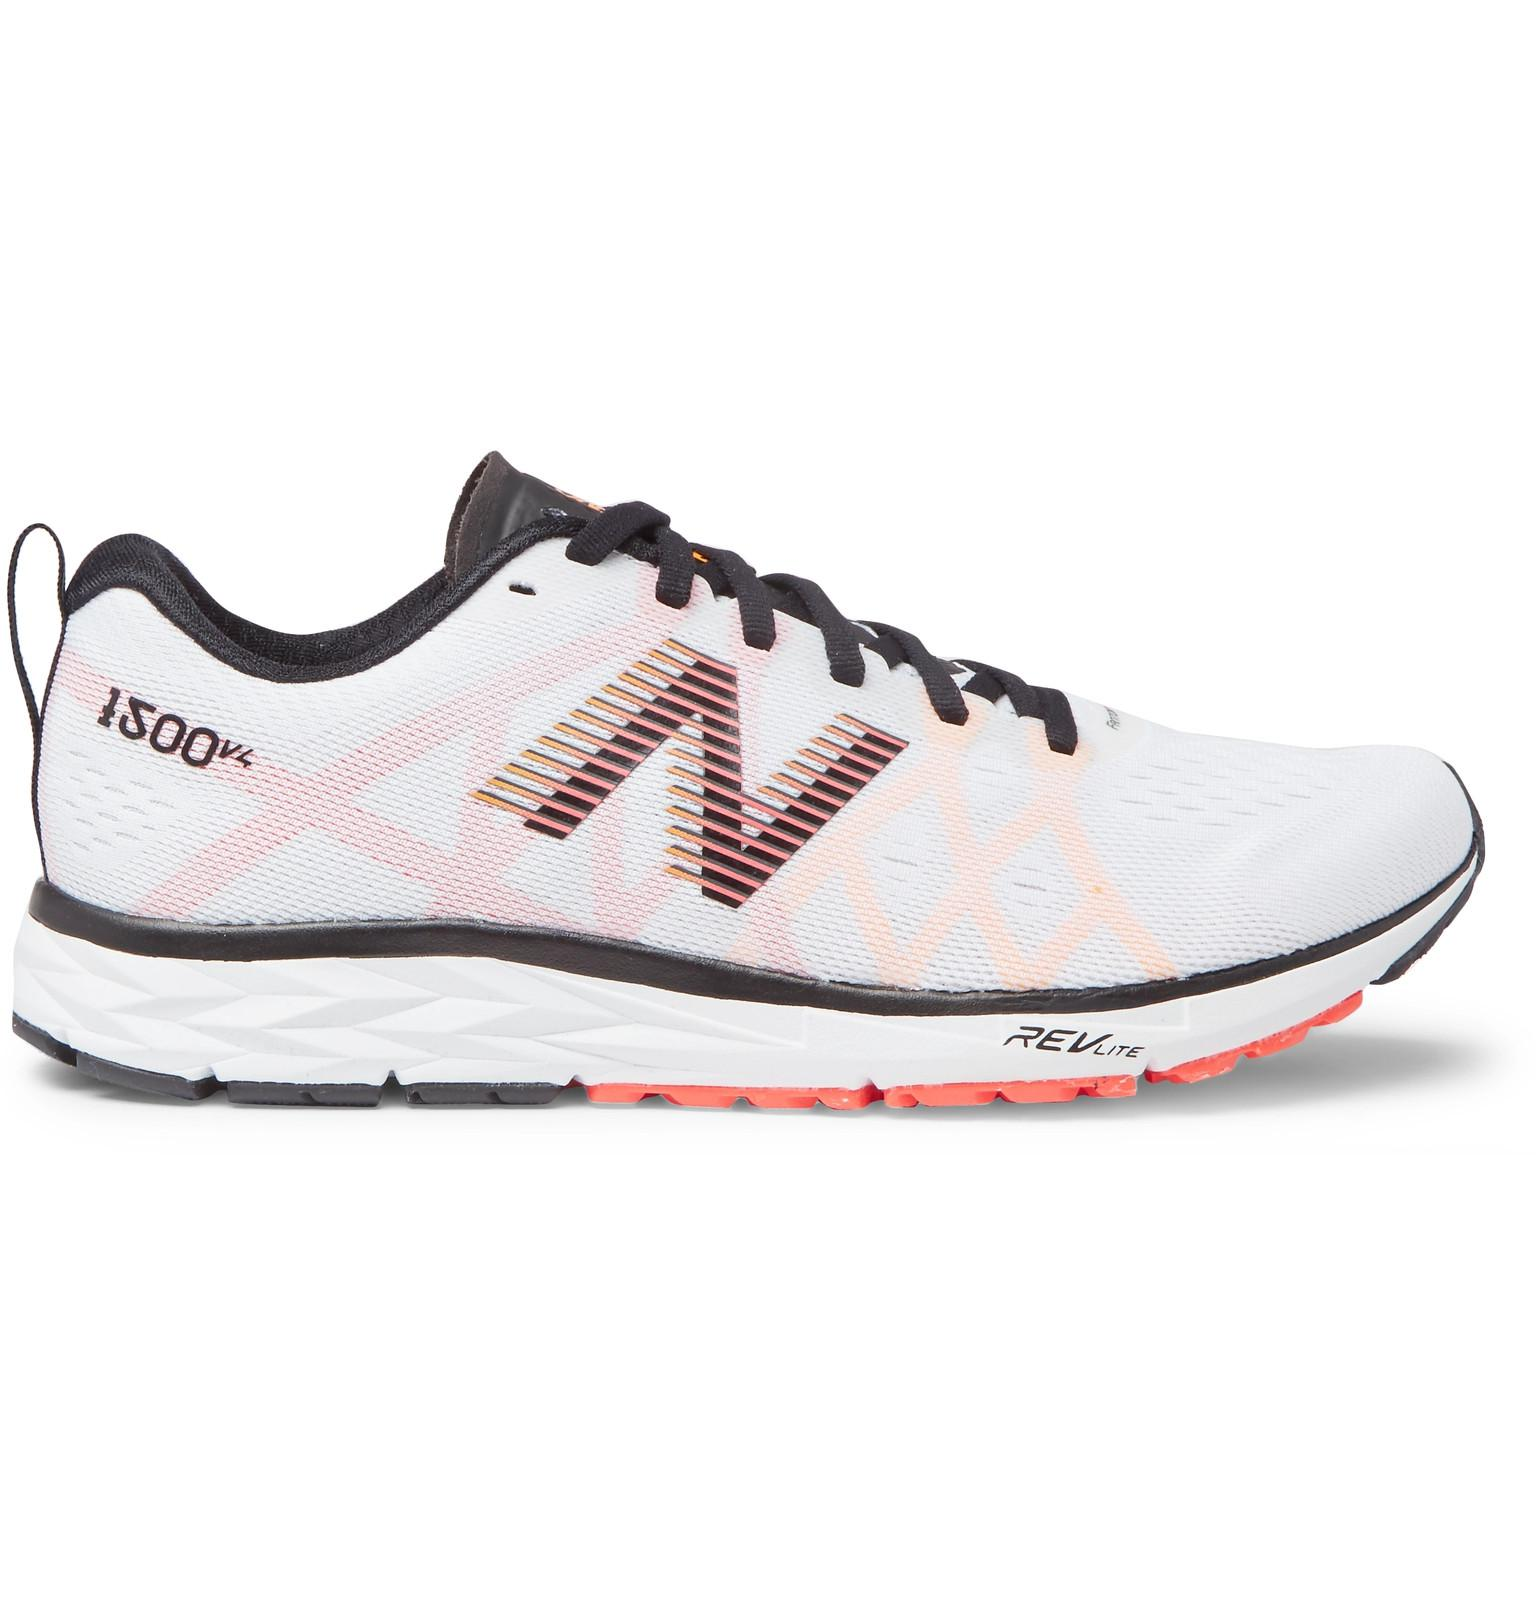 New Balance MS574D Sneakers with Mesh Gr. US 10